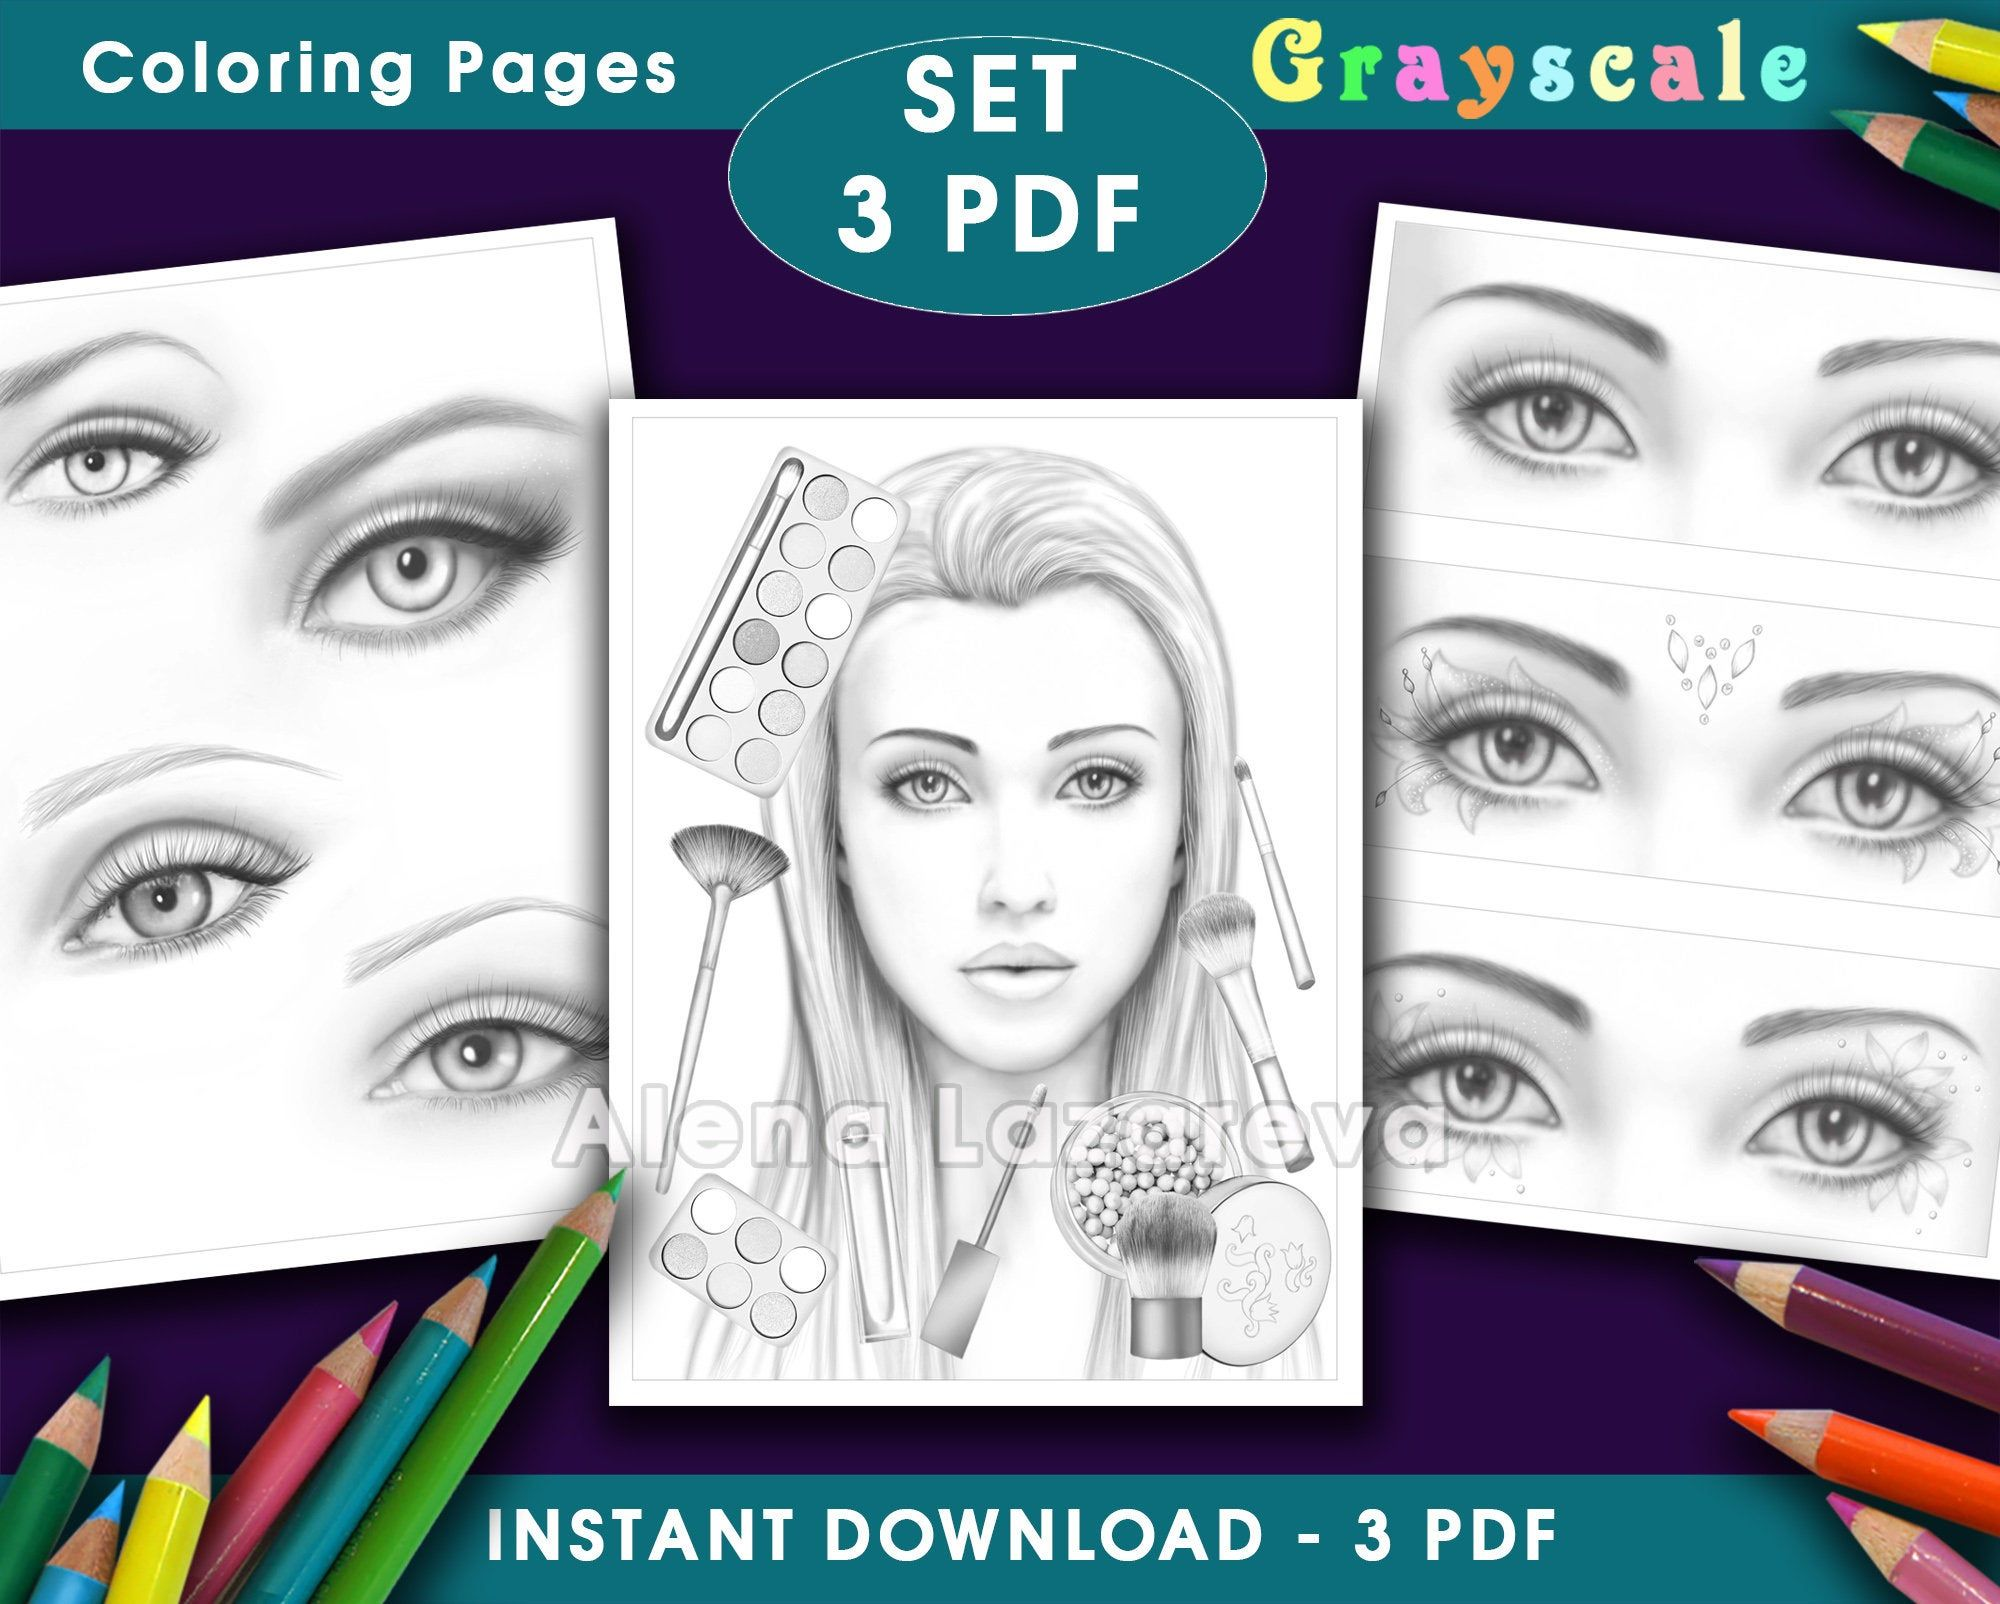 Coloring Pages 3 Pdf Grayscale Makeup Eyes Fashion Life Etsy Coloring Pages Grayscale Coloring Books Grayscale Coloring